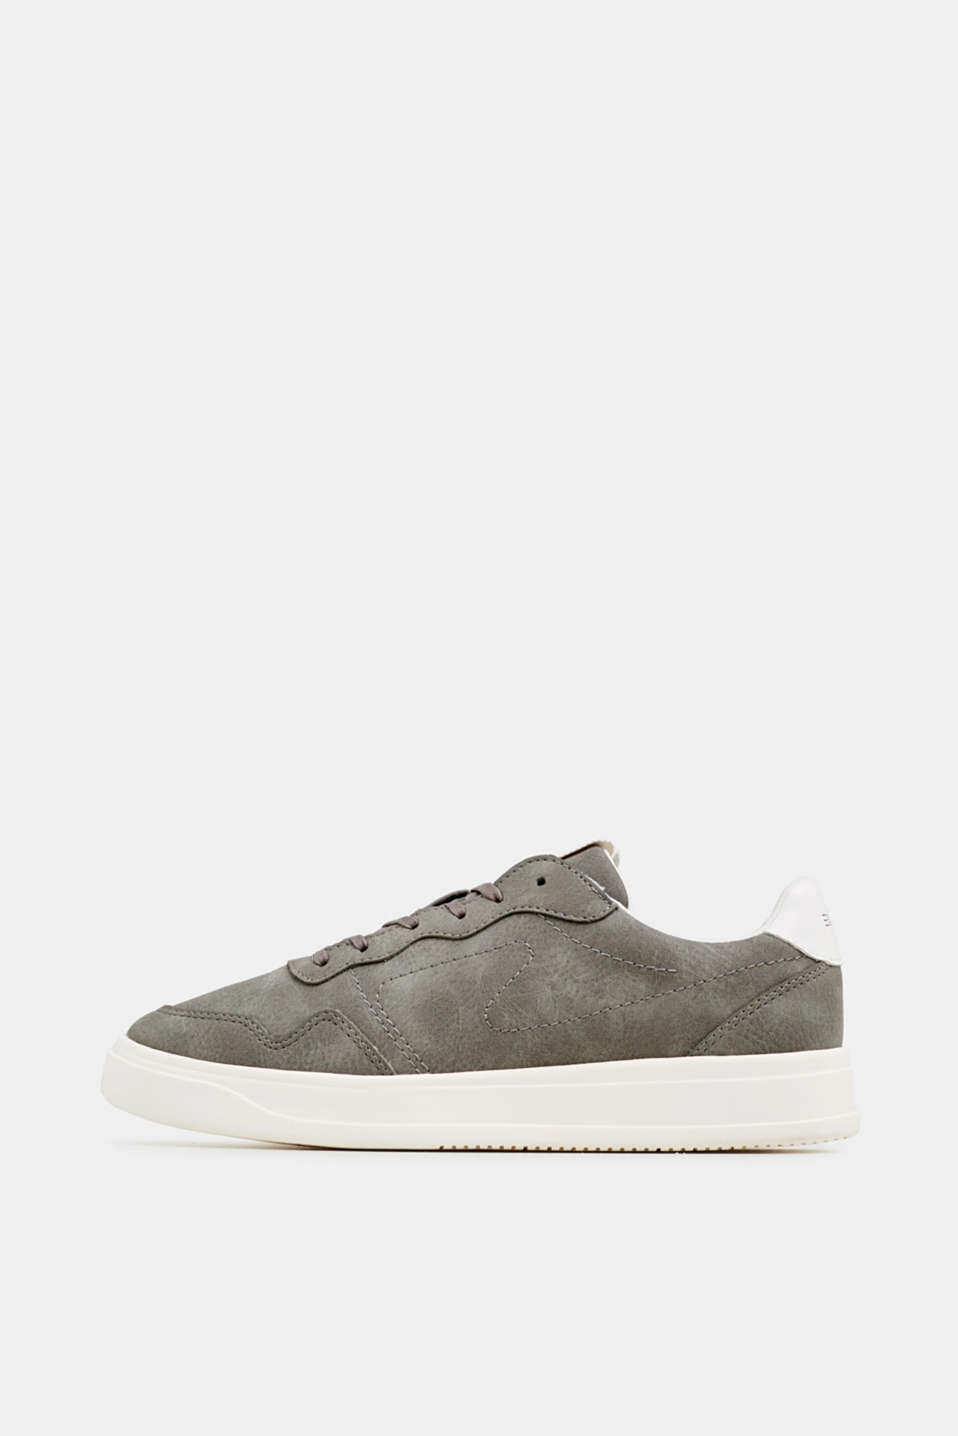 Esprit - Retro trainers in faux nubuck leather